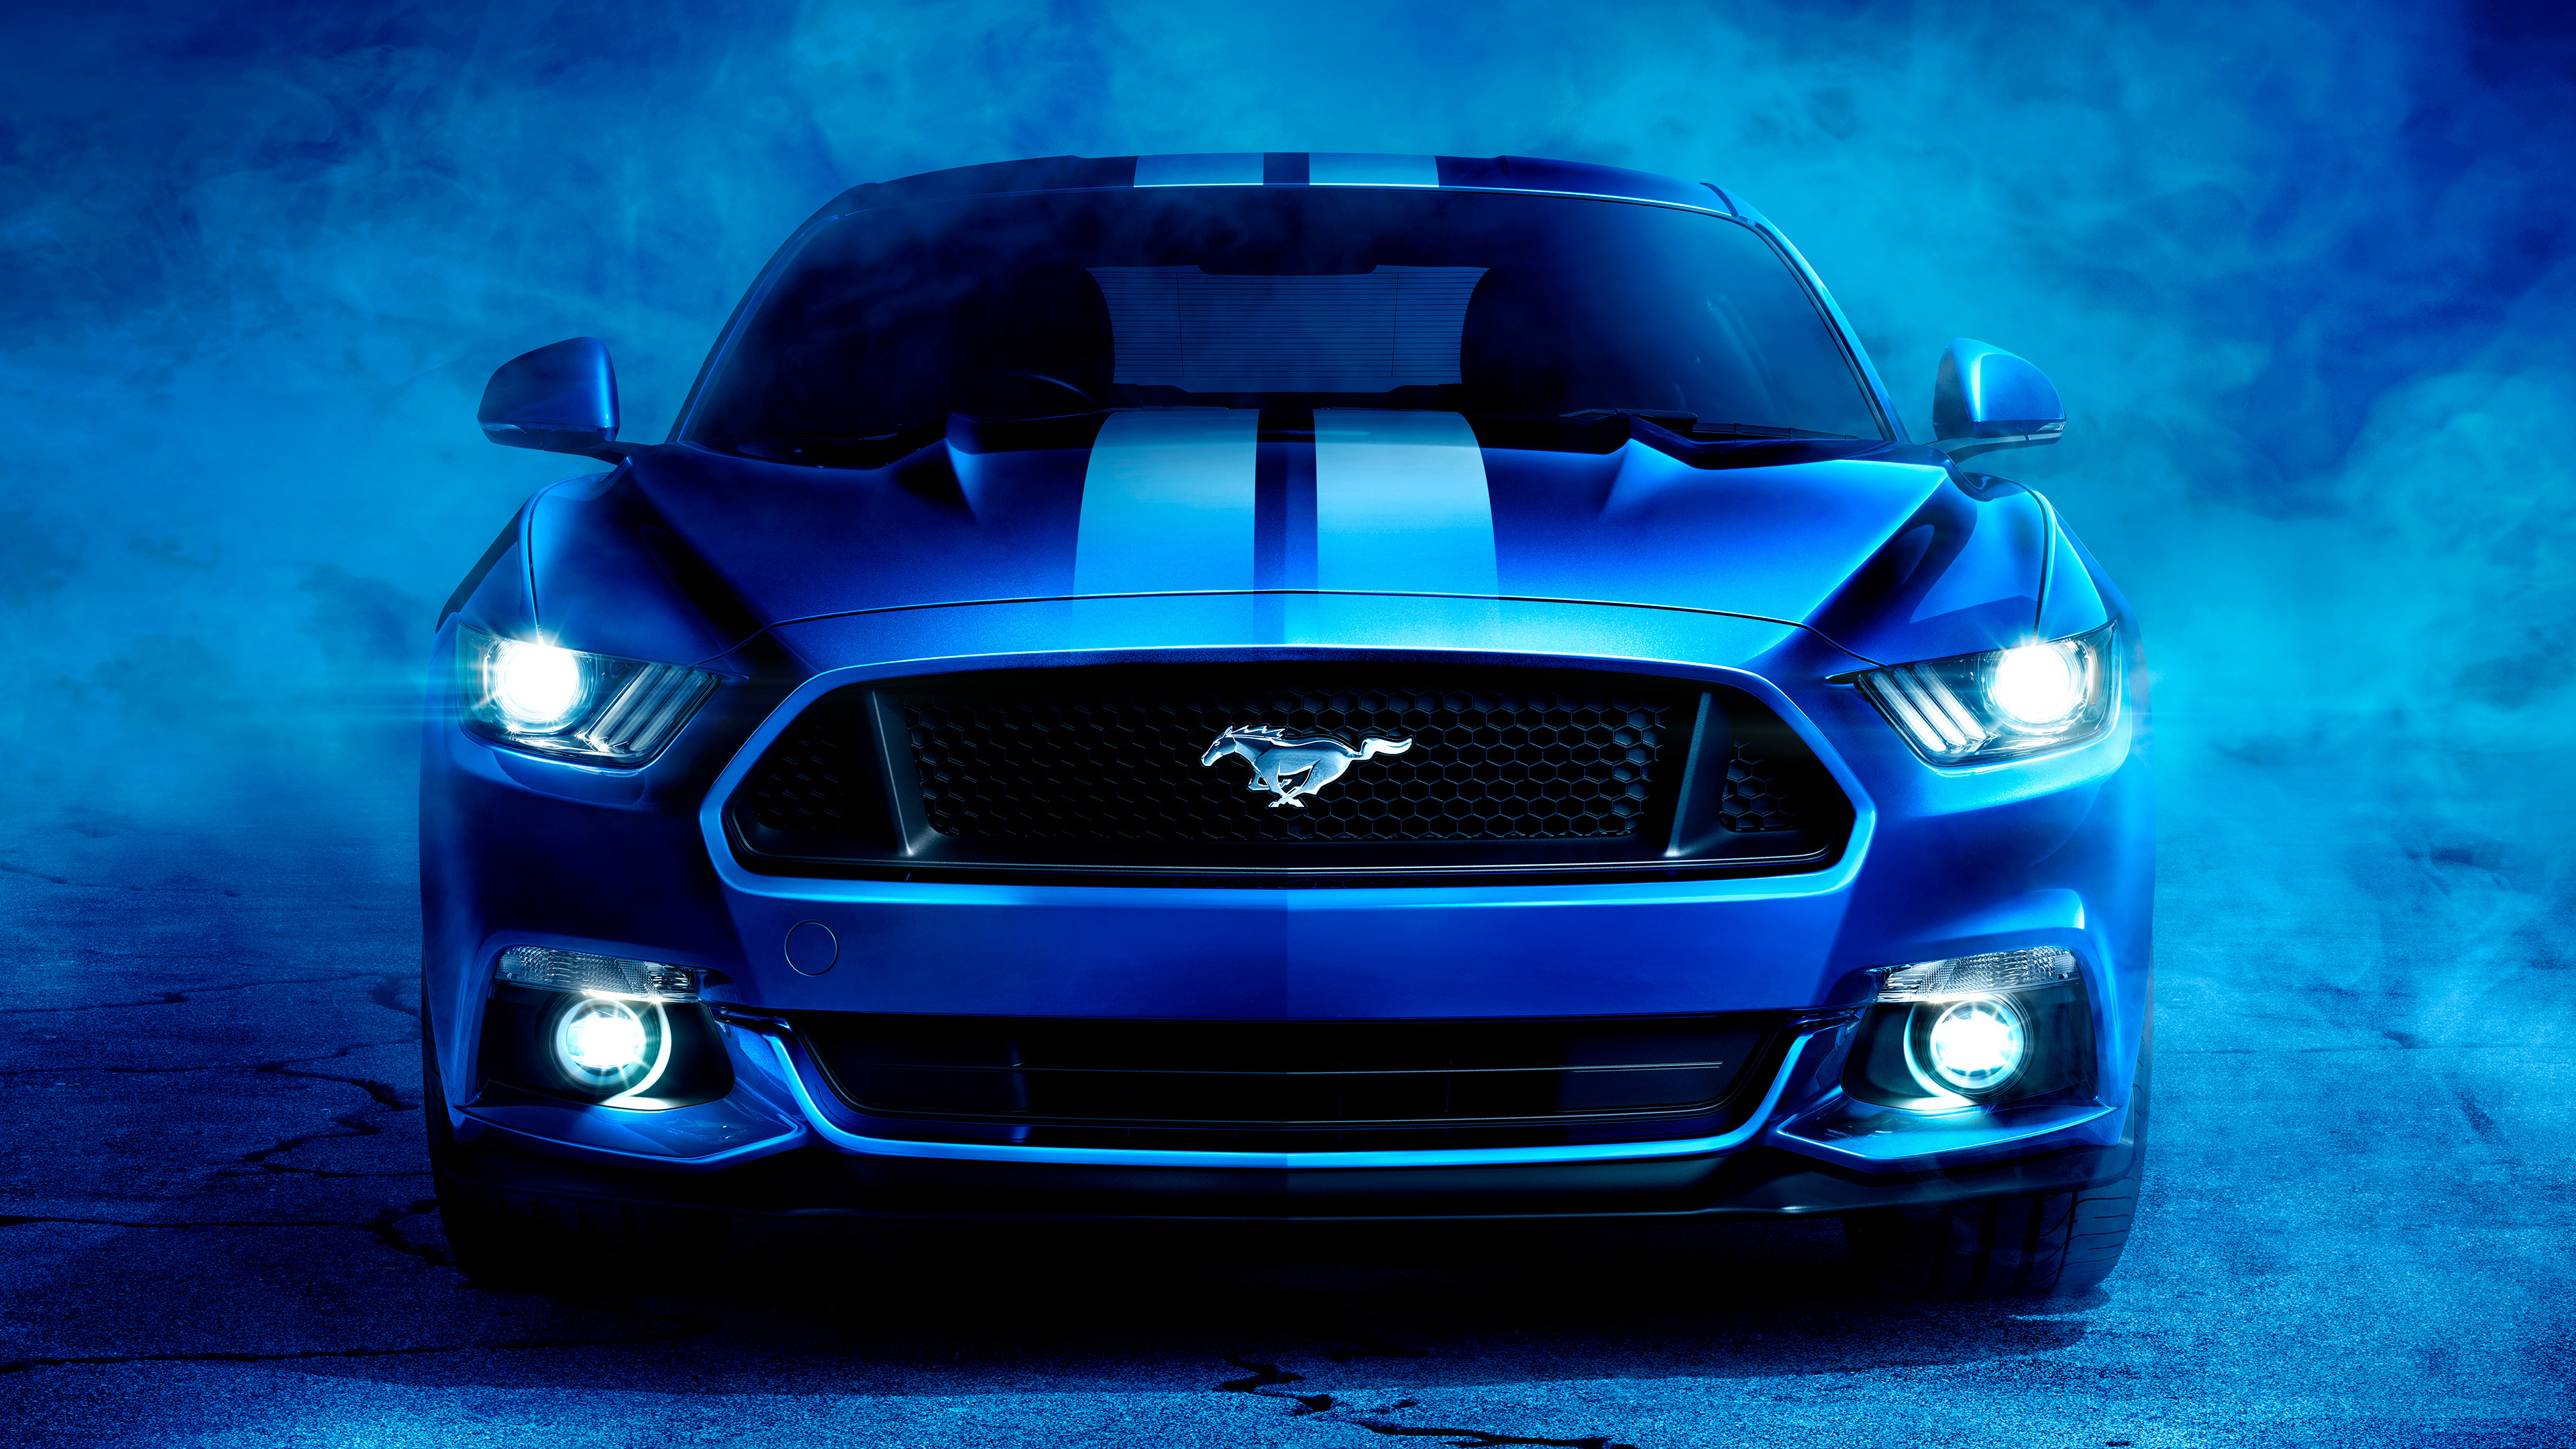 Mustang Car Wallpaper Download Ford Shelby Mustang 4k Wallpapers Hd Wallpapers Id 25997